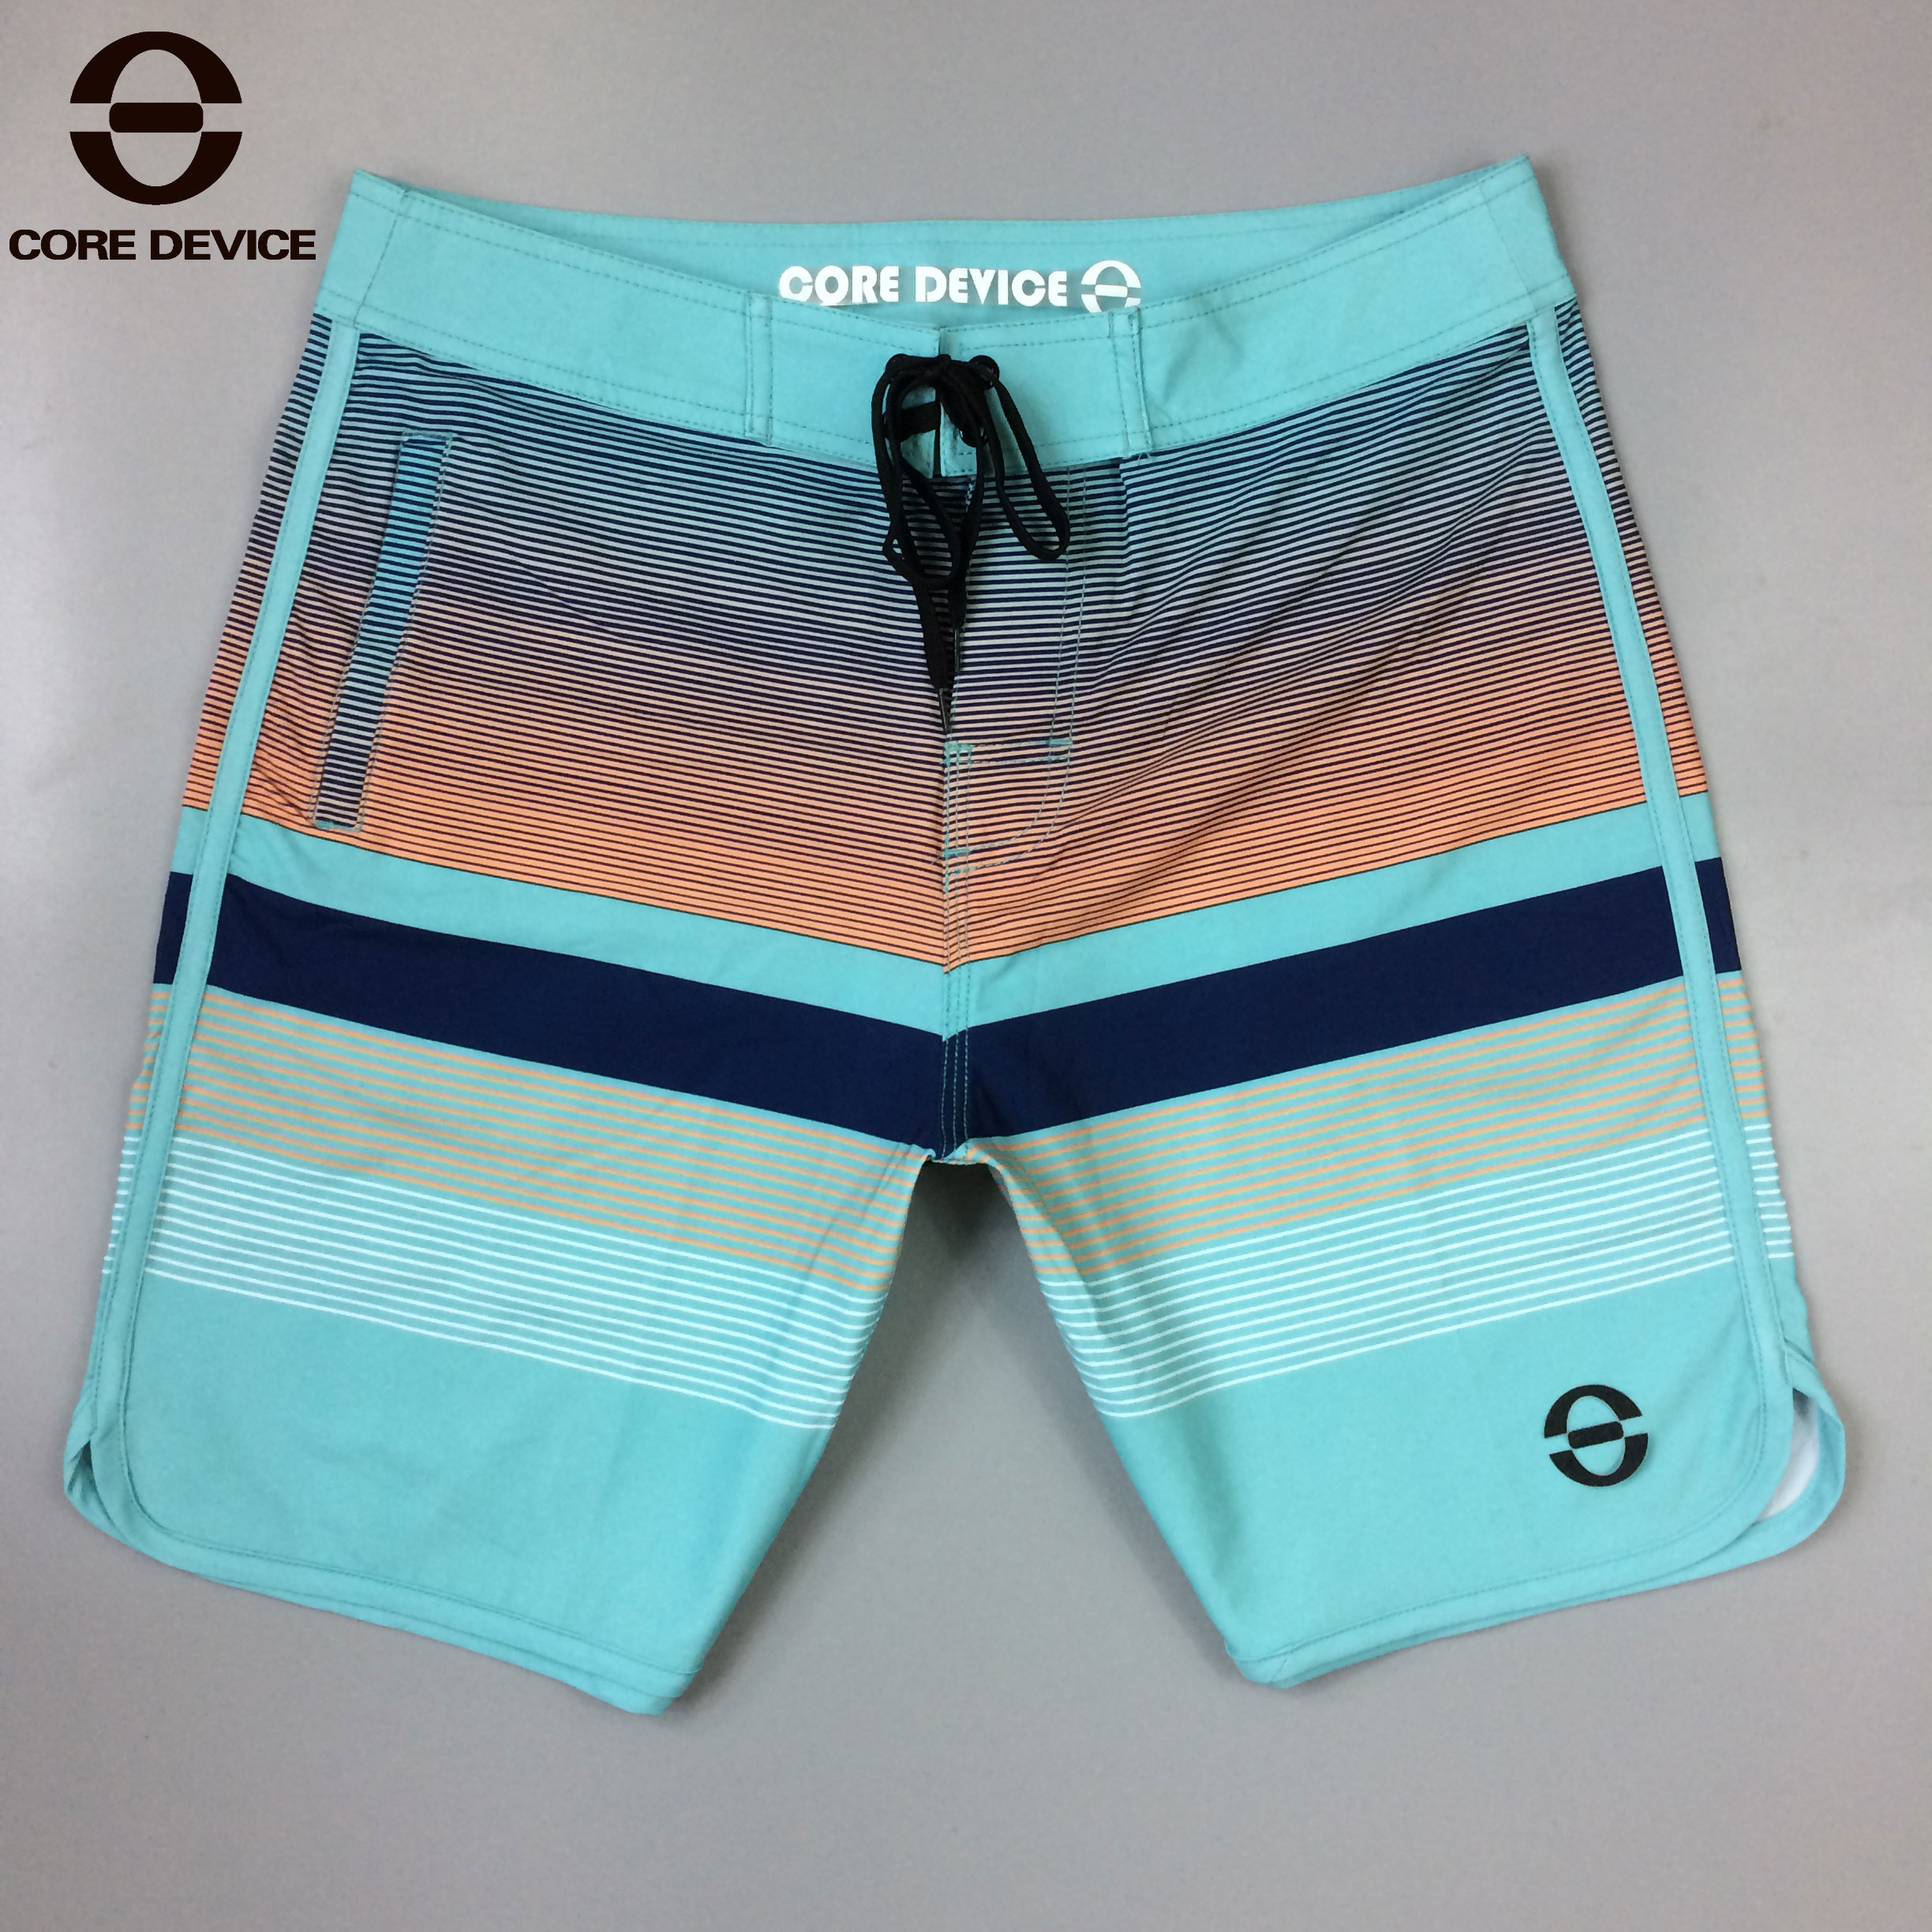 63c44191ccec2 New 2019 Striped Water Repellency Stretch Summer Shorts Men Board Shorts  Swimwear Men Beach Shorts Men